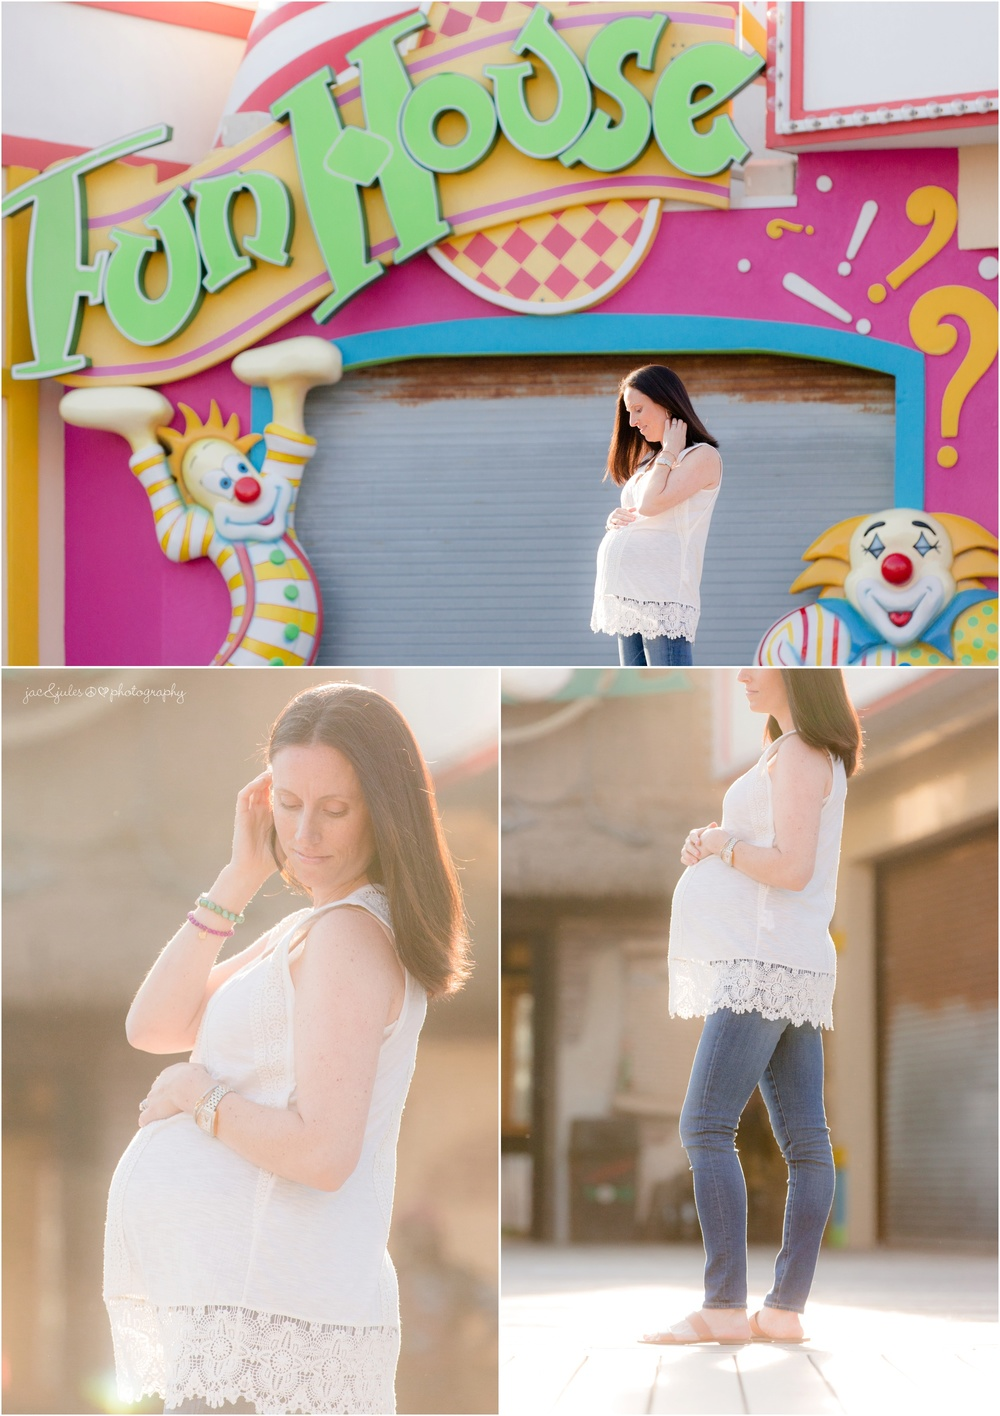 Pregnant Mom on point pleasant boardwalk.  Fun house maternity